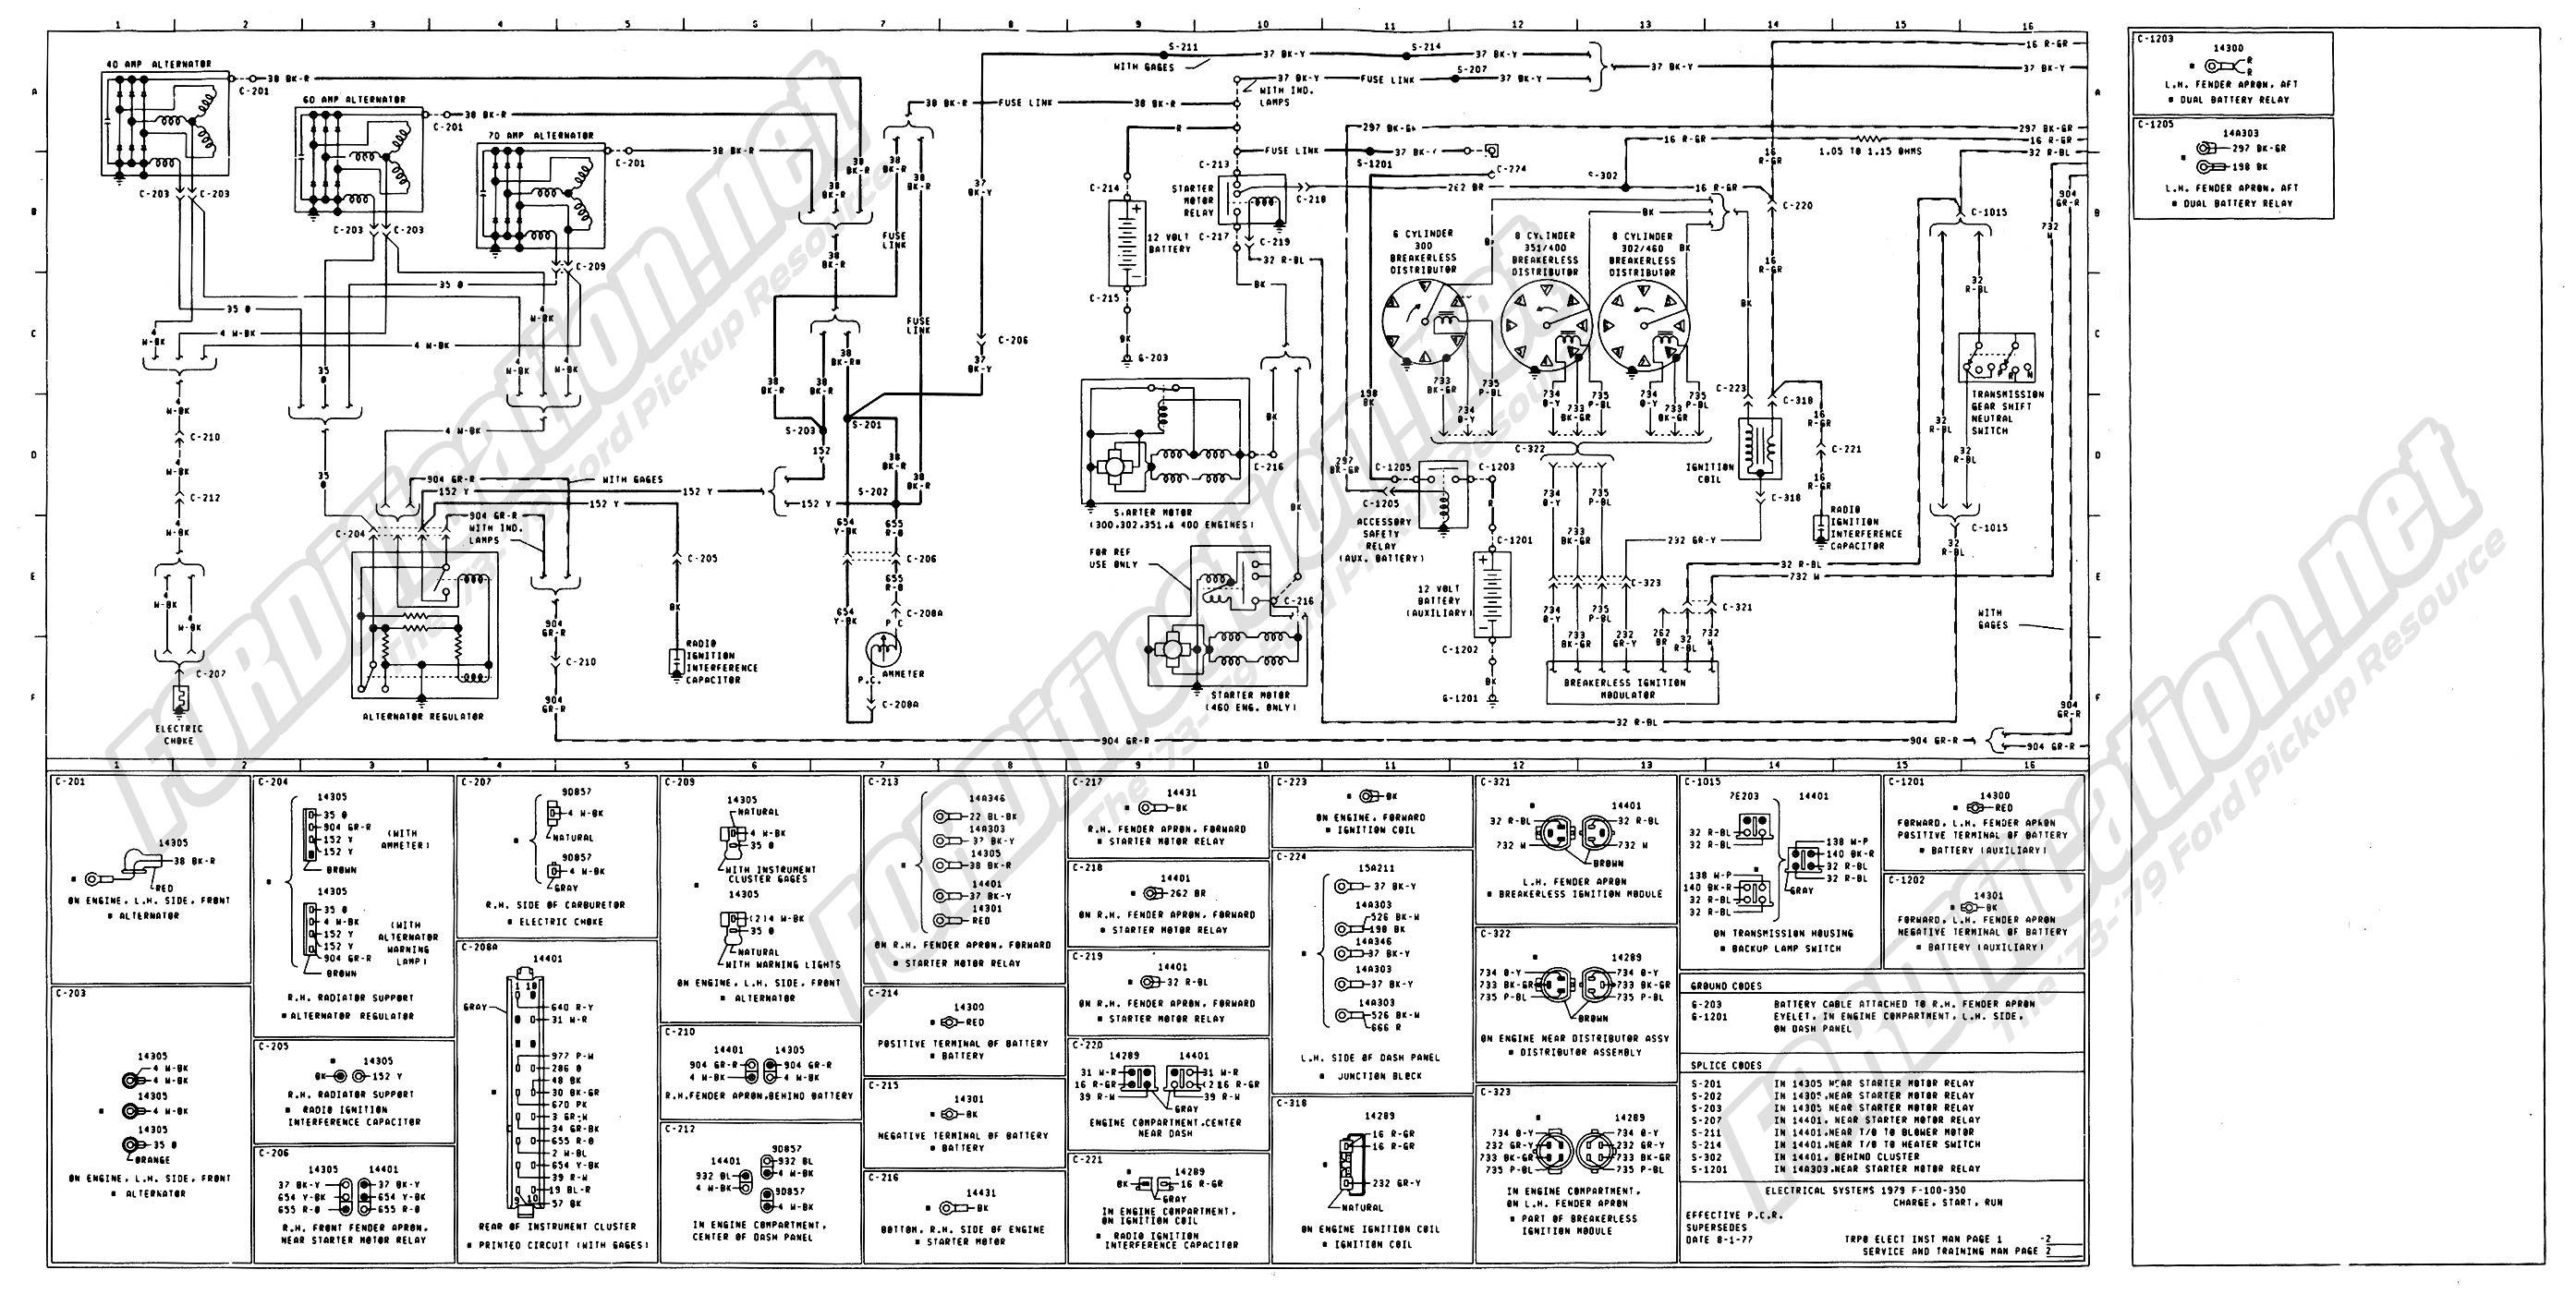 1973 1979 ford truck wiring diagrams & schematics fordification net 84 ford f 150 wiring diagram 2011 ford f 150 heater wiring diagram #11